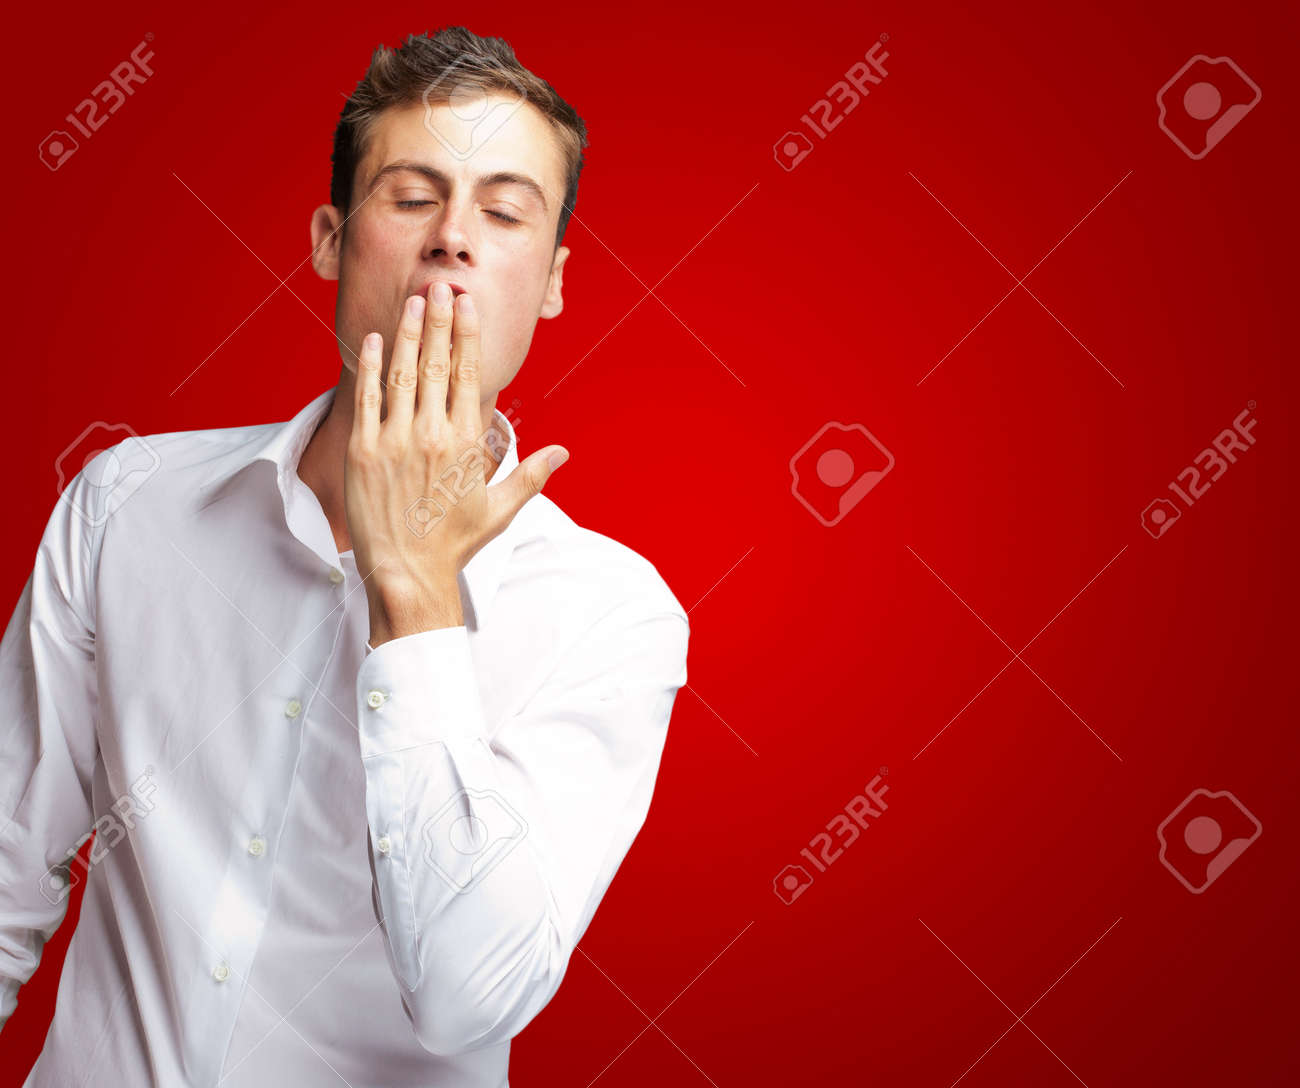 Portrait Of Young Man Yawning Isolated On Red Background Stock Photo - 15850731